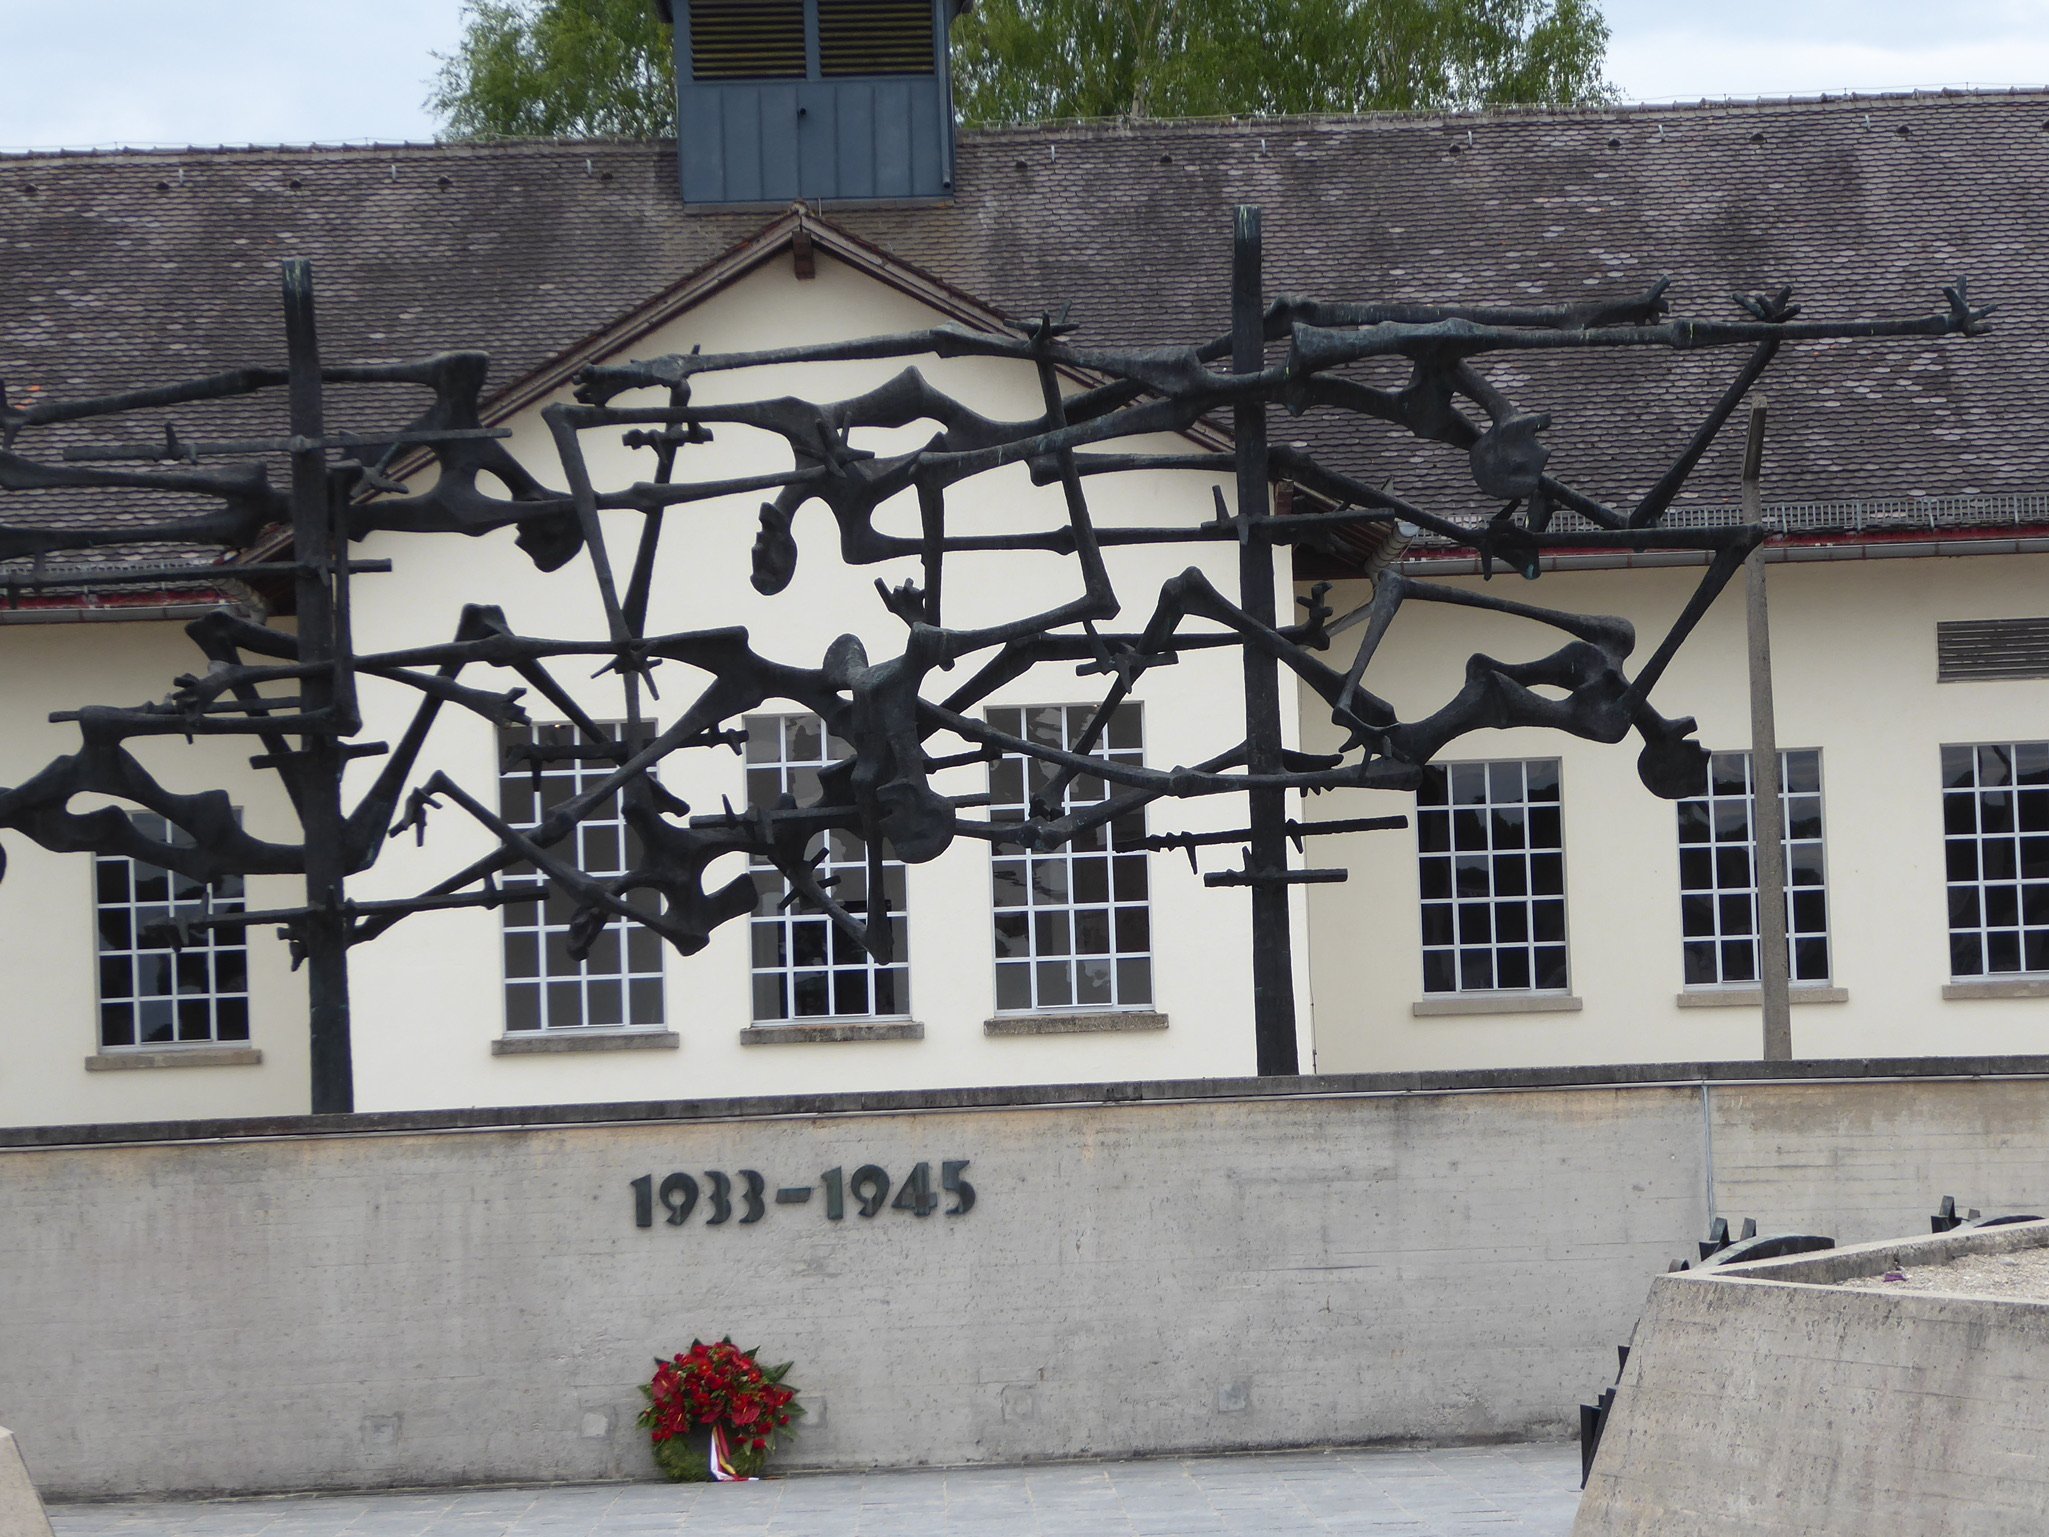 Sculpture at Dachau.